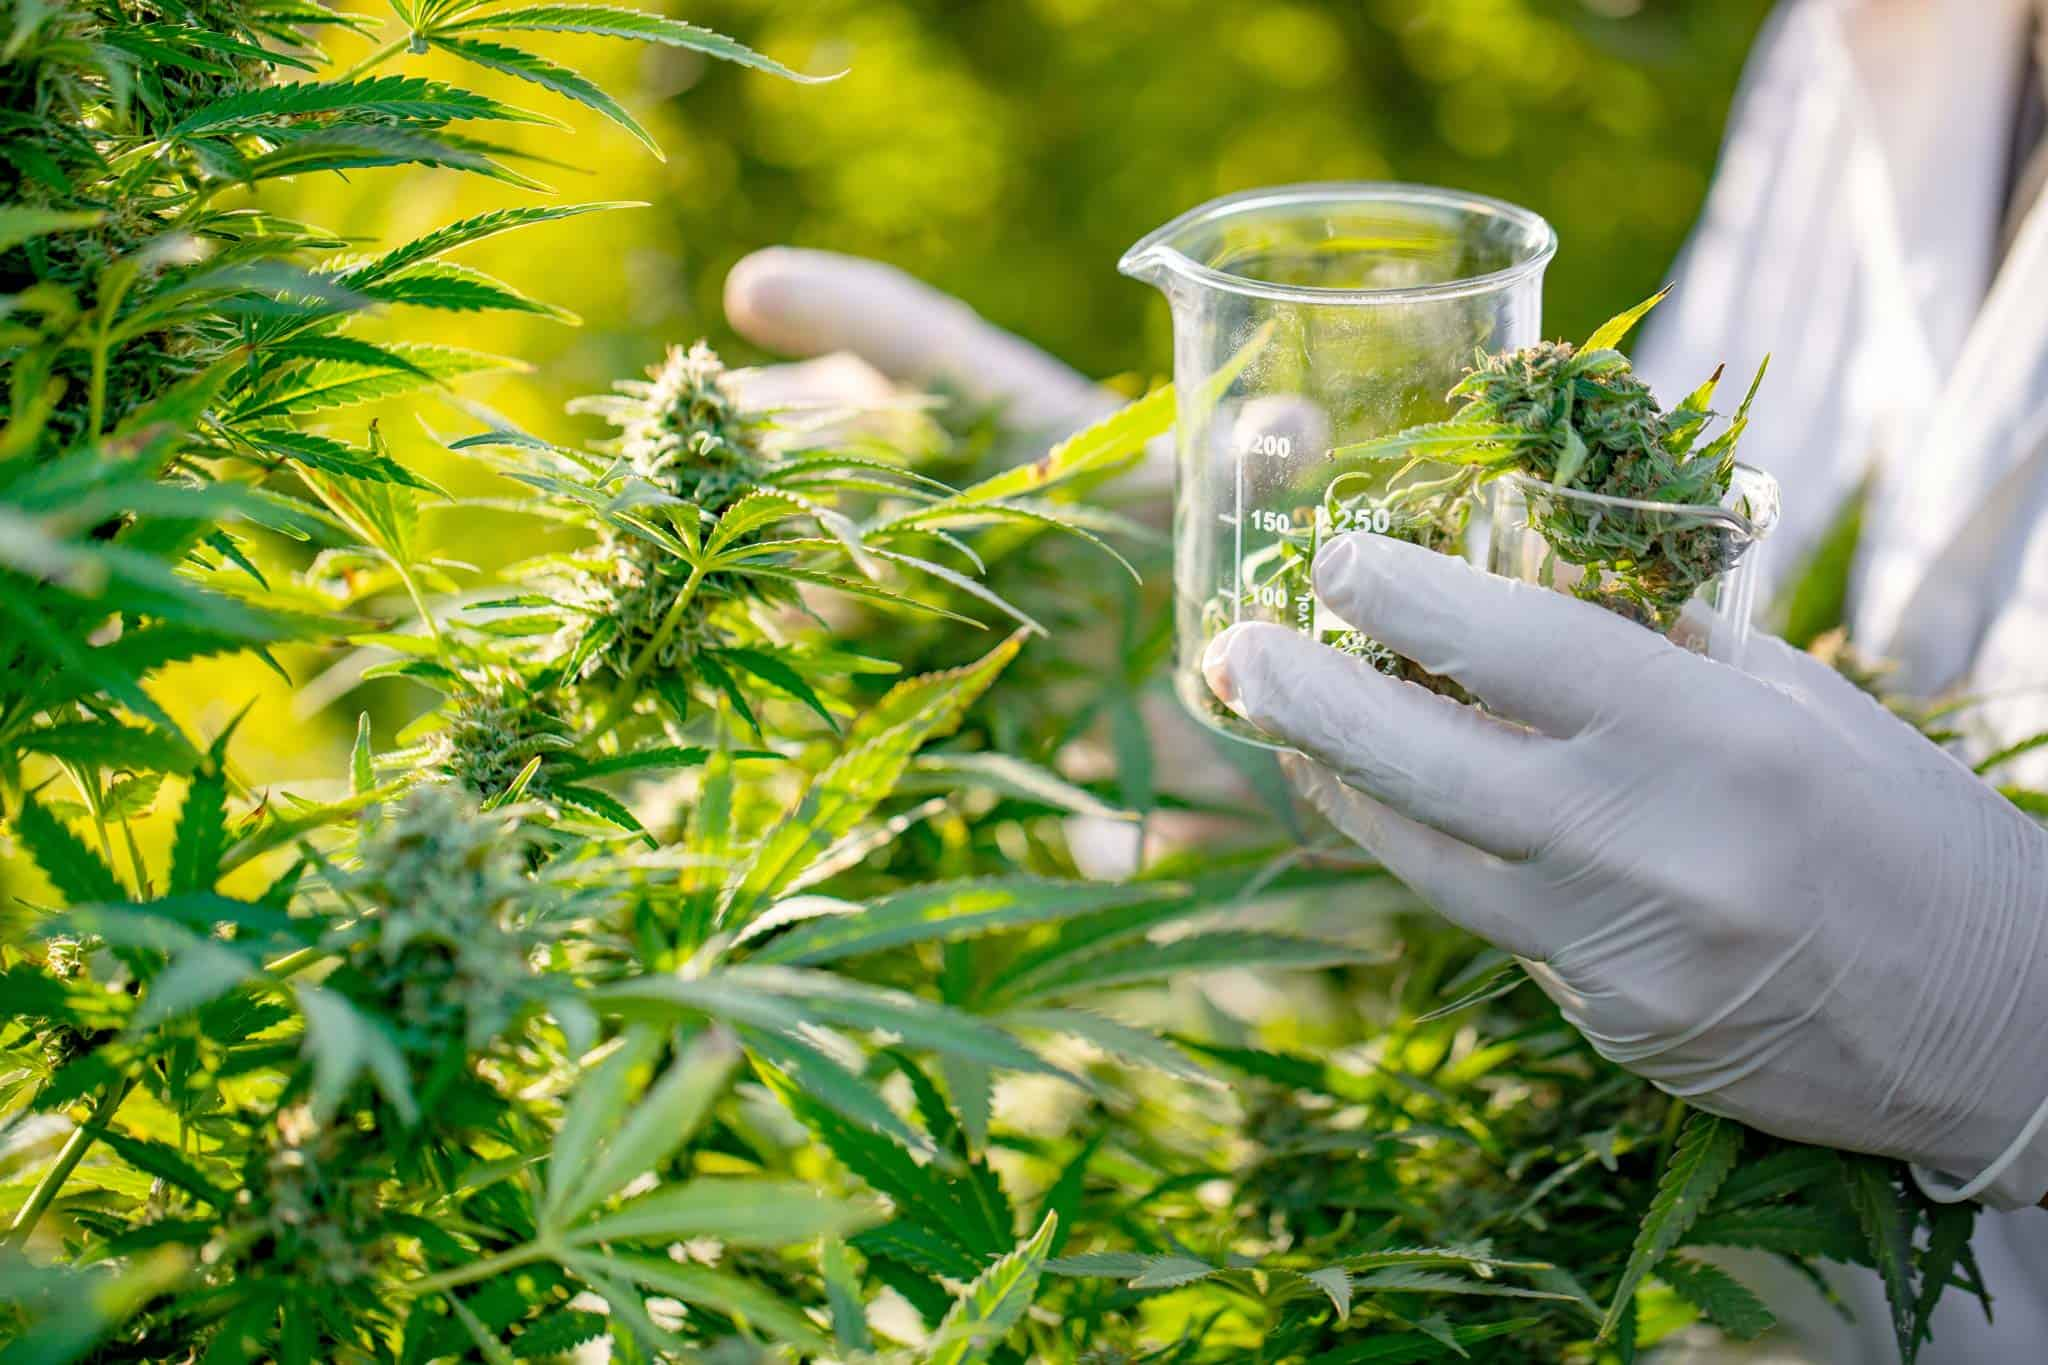 Image shows great care is taken to ensure quality of CBD products.